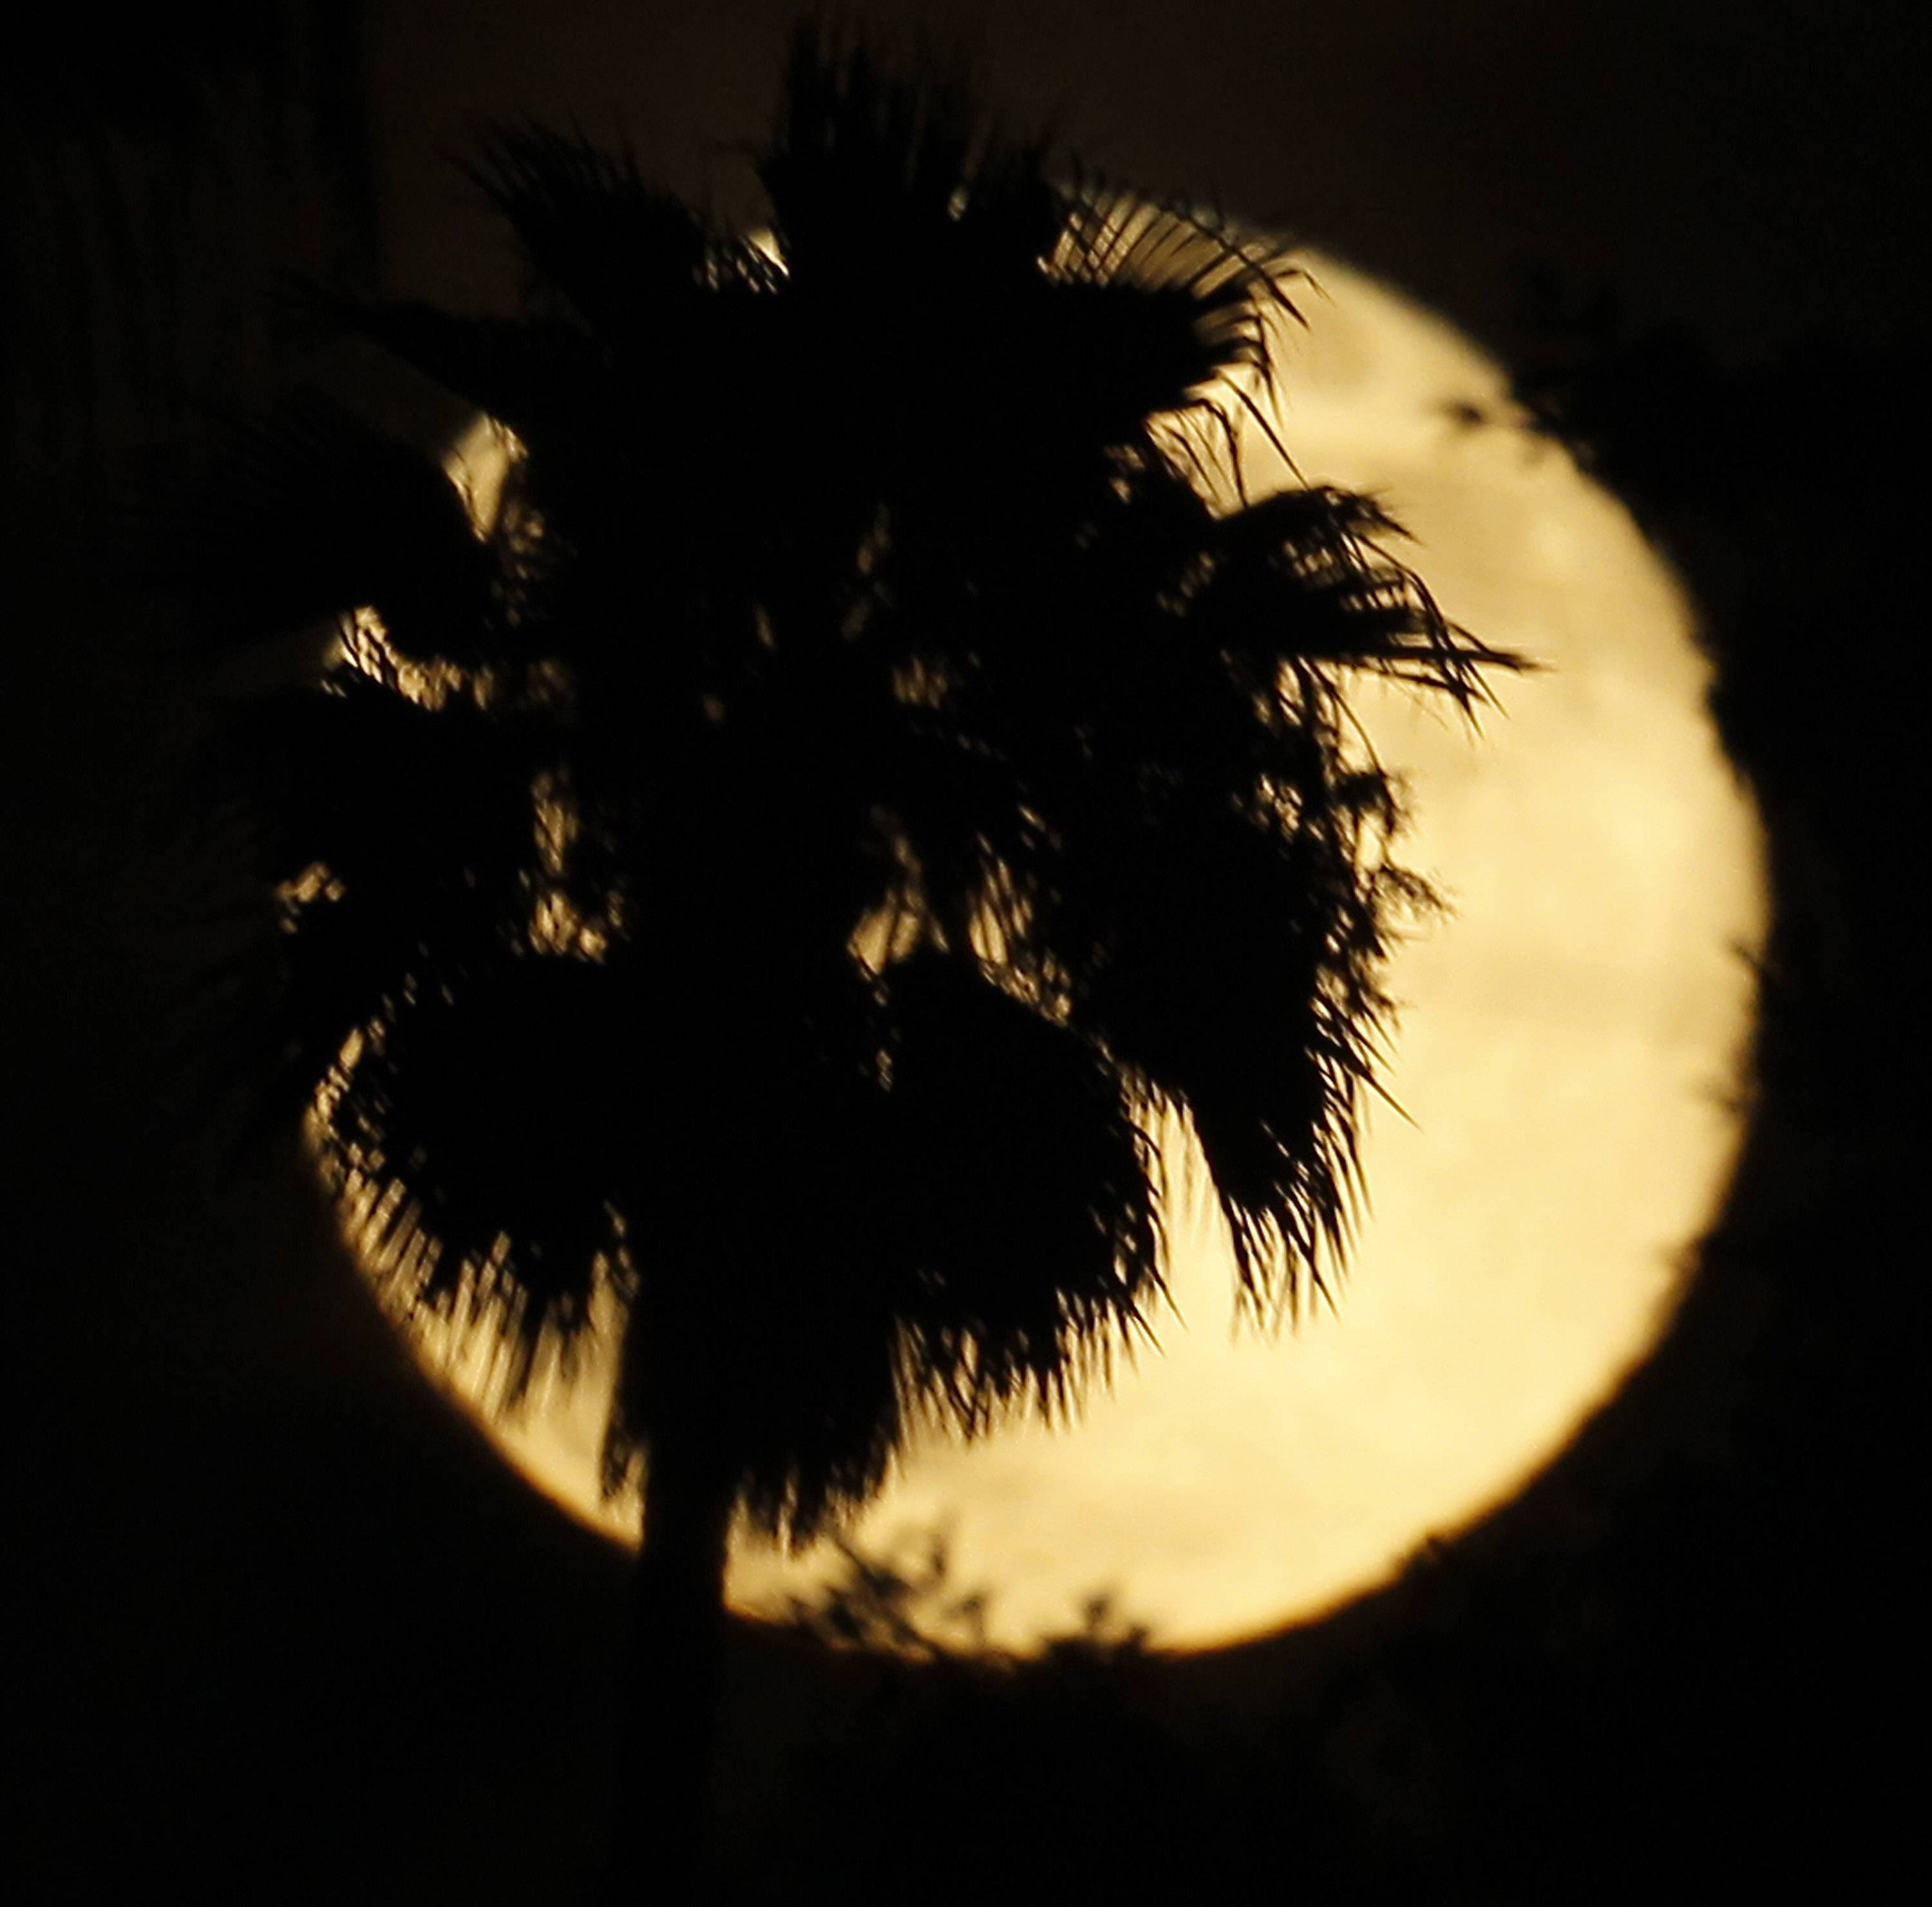 A palm tree is silhouetted against a supermoon in Whittier, Calif., Saturday, July 12, 2014.